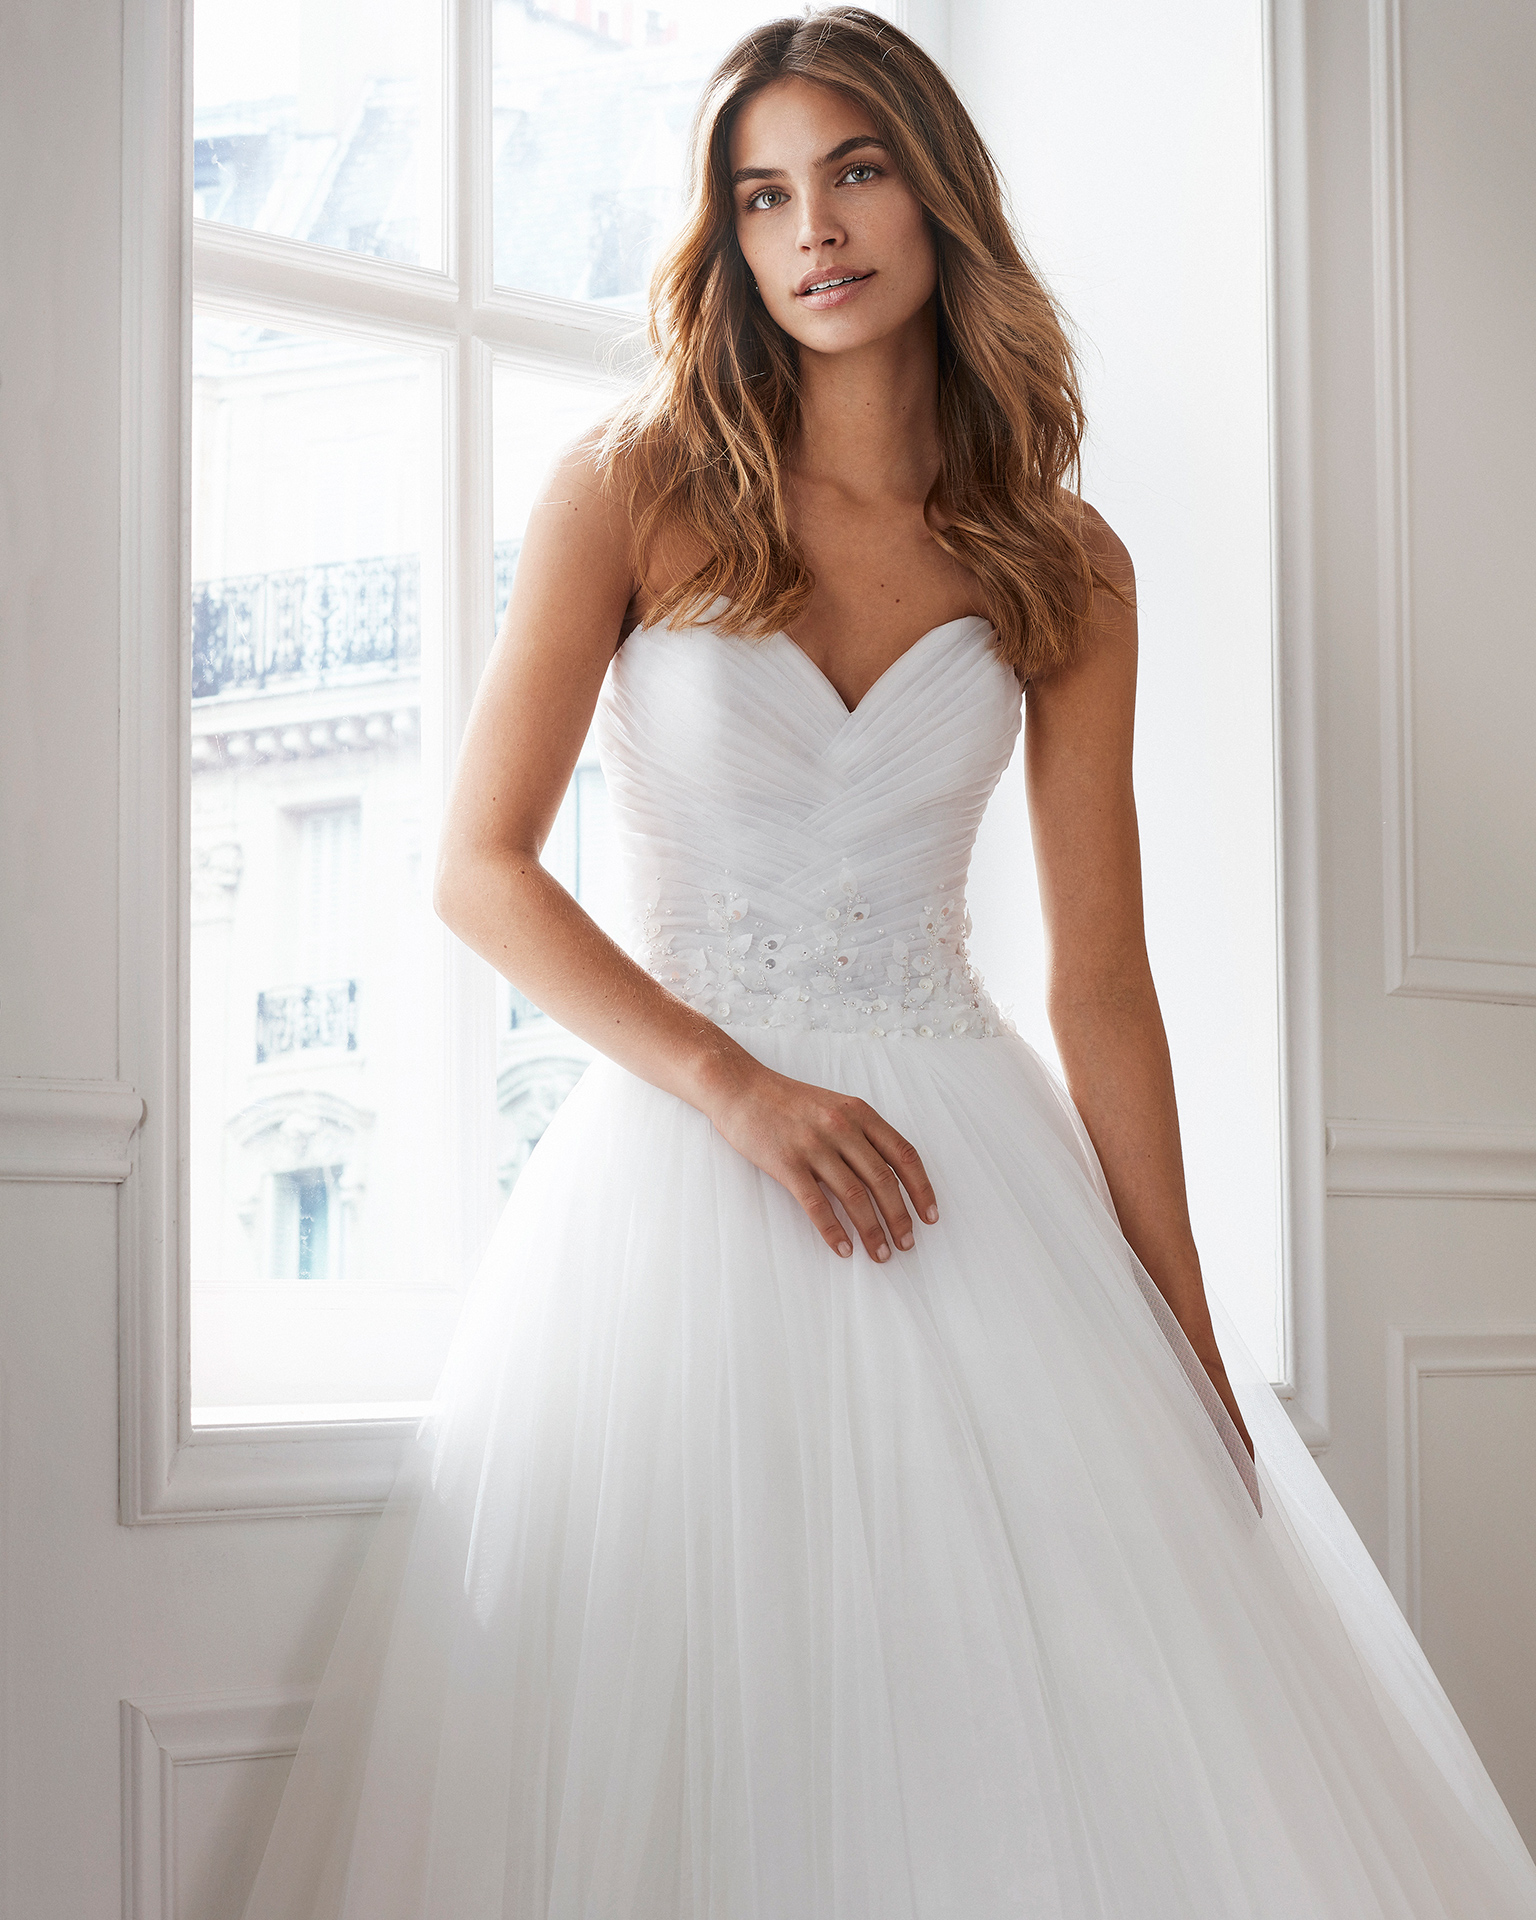 Tulle princess-style wedding dress. Sweetheart neckline and beaded details at the waist. Available in natural. 2019  Collection.